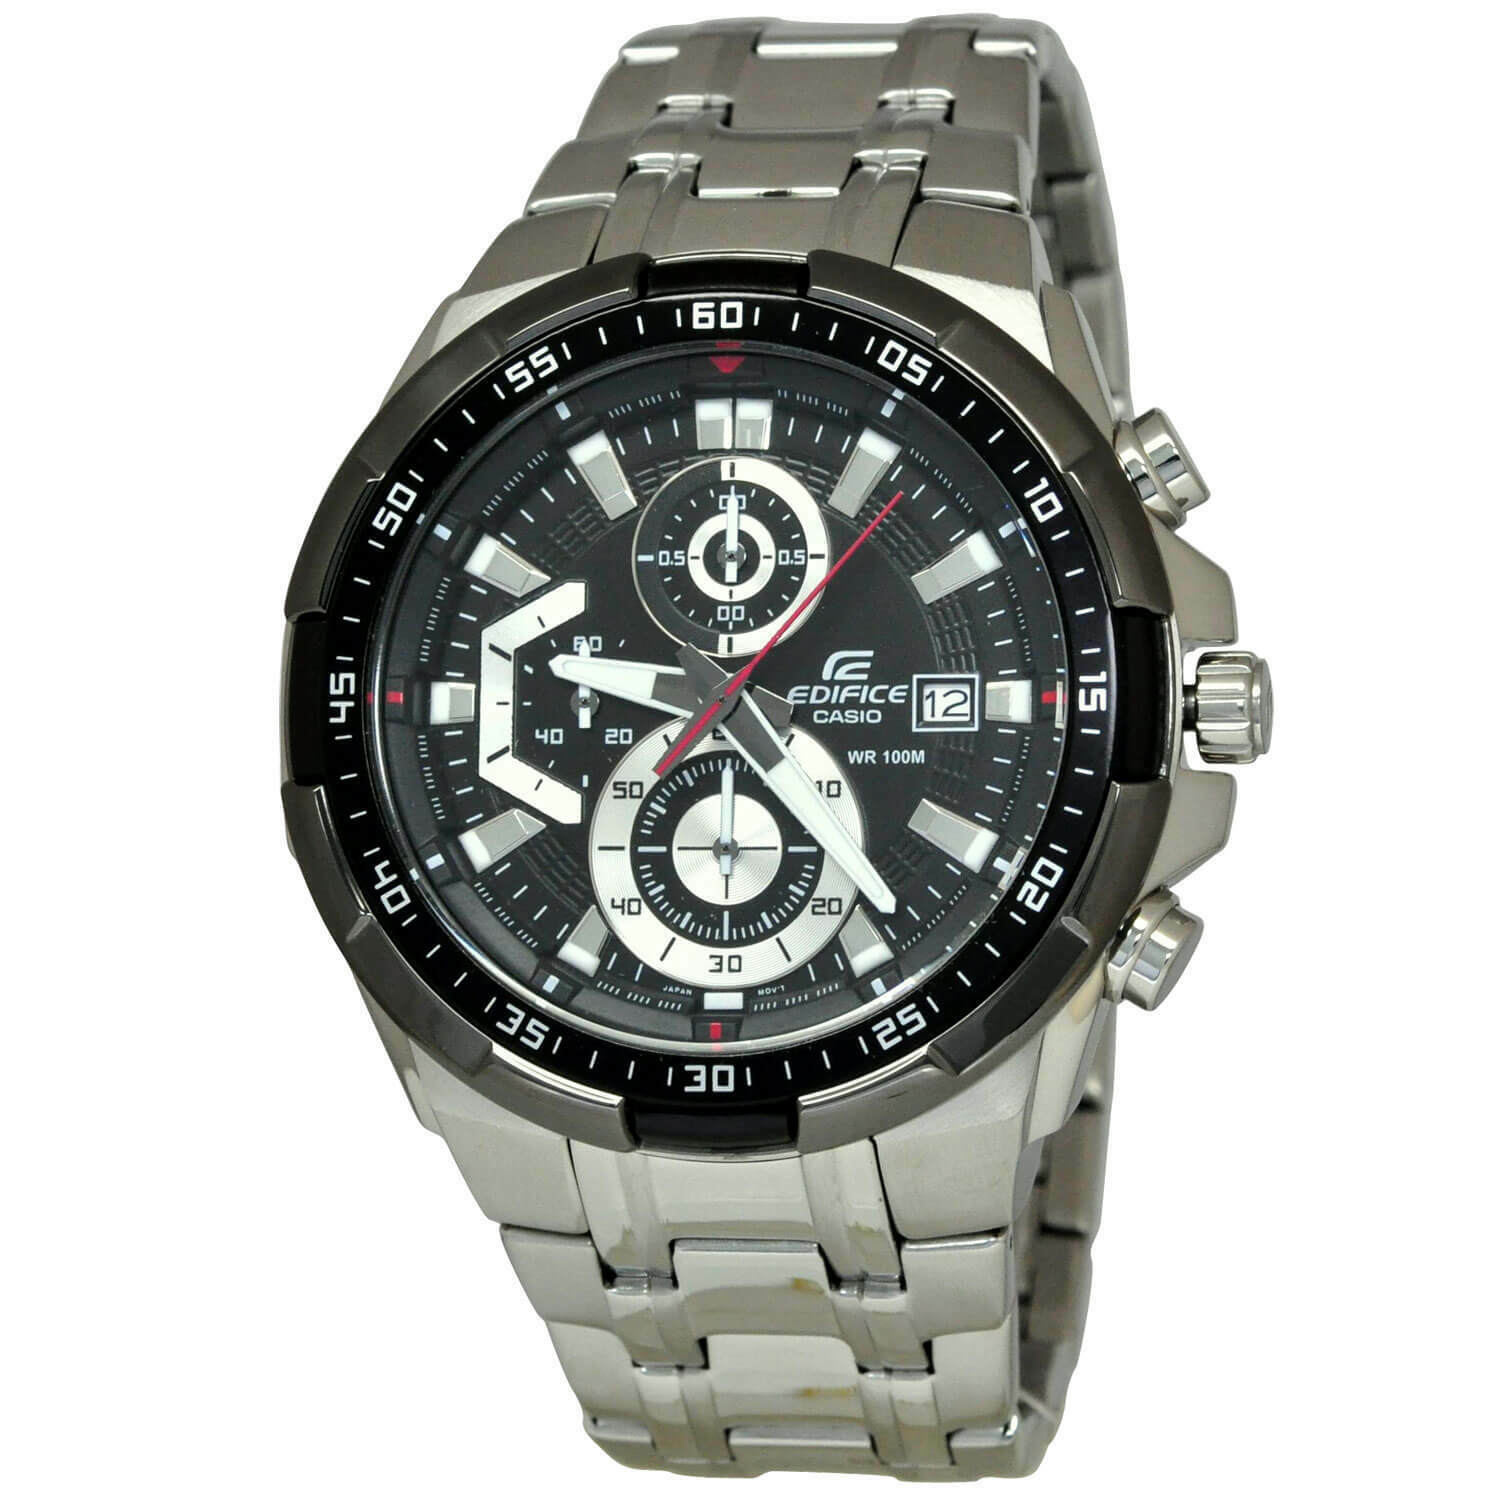 Casio Edifice Efr539d 1a Watch 9900 Picclick 543d Stainless Silver Chrono Men 1 Of 3only 2 Available